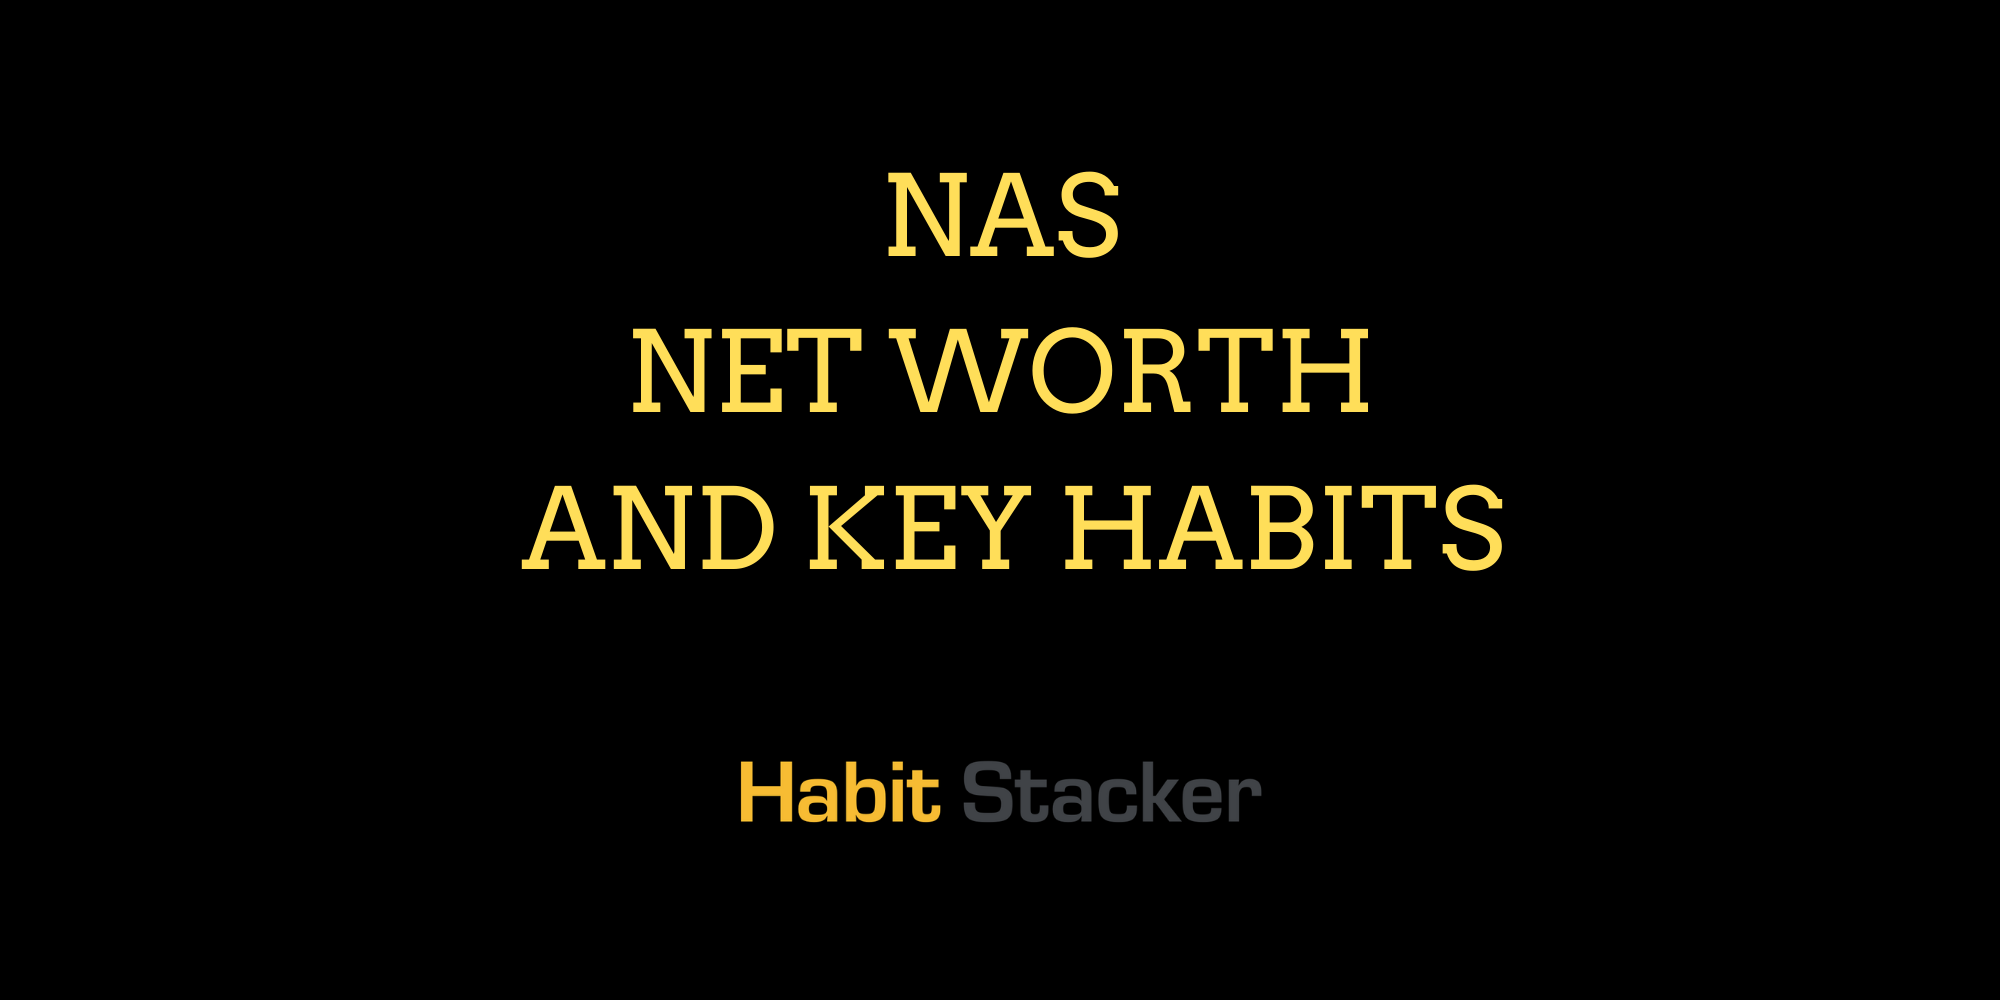 Nas Net Worth and Key Habits